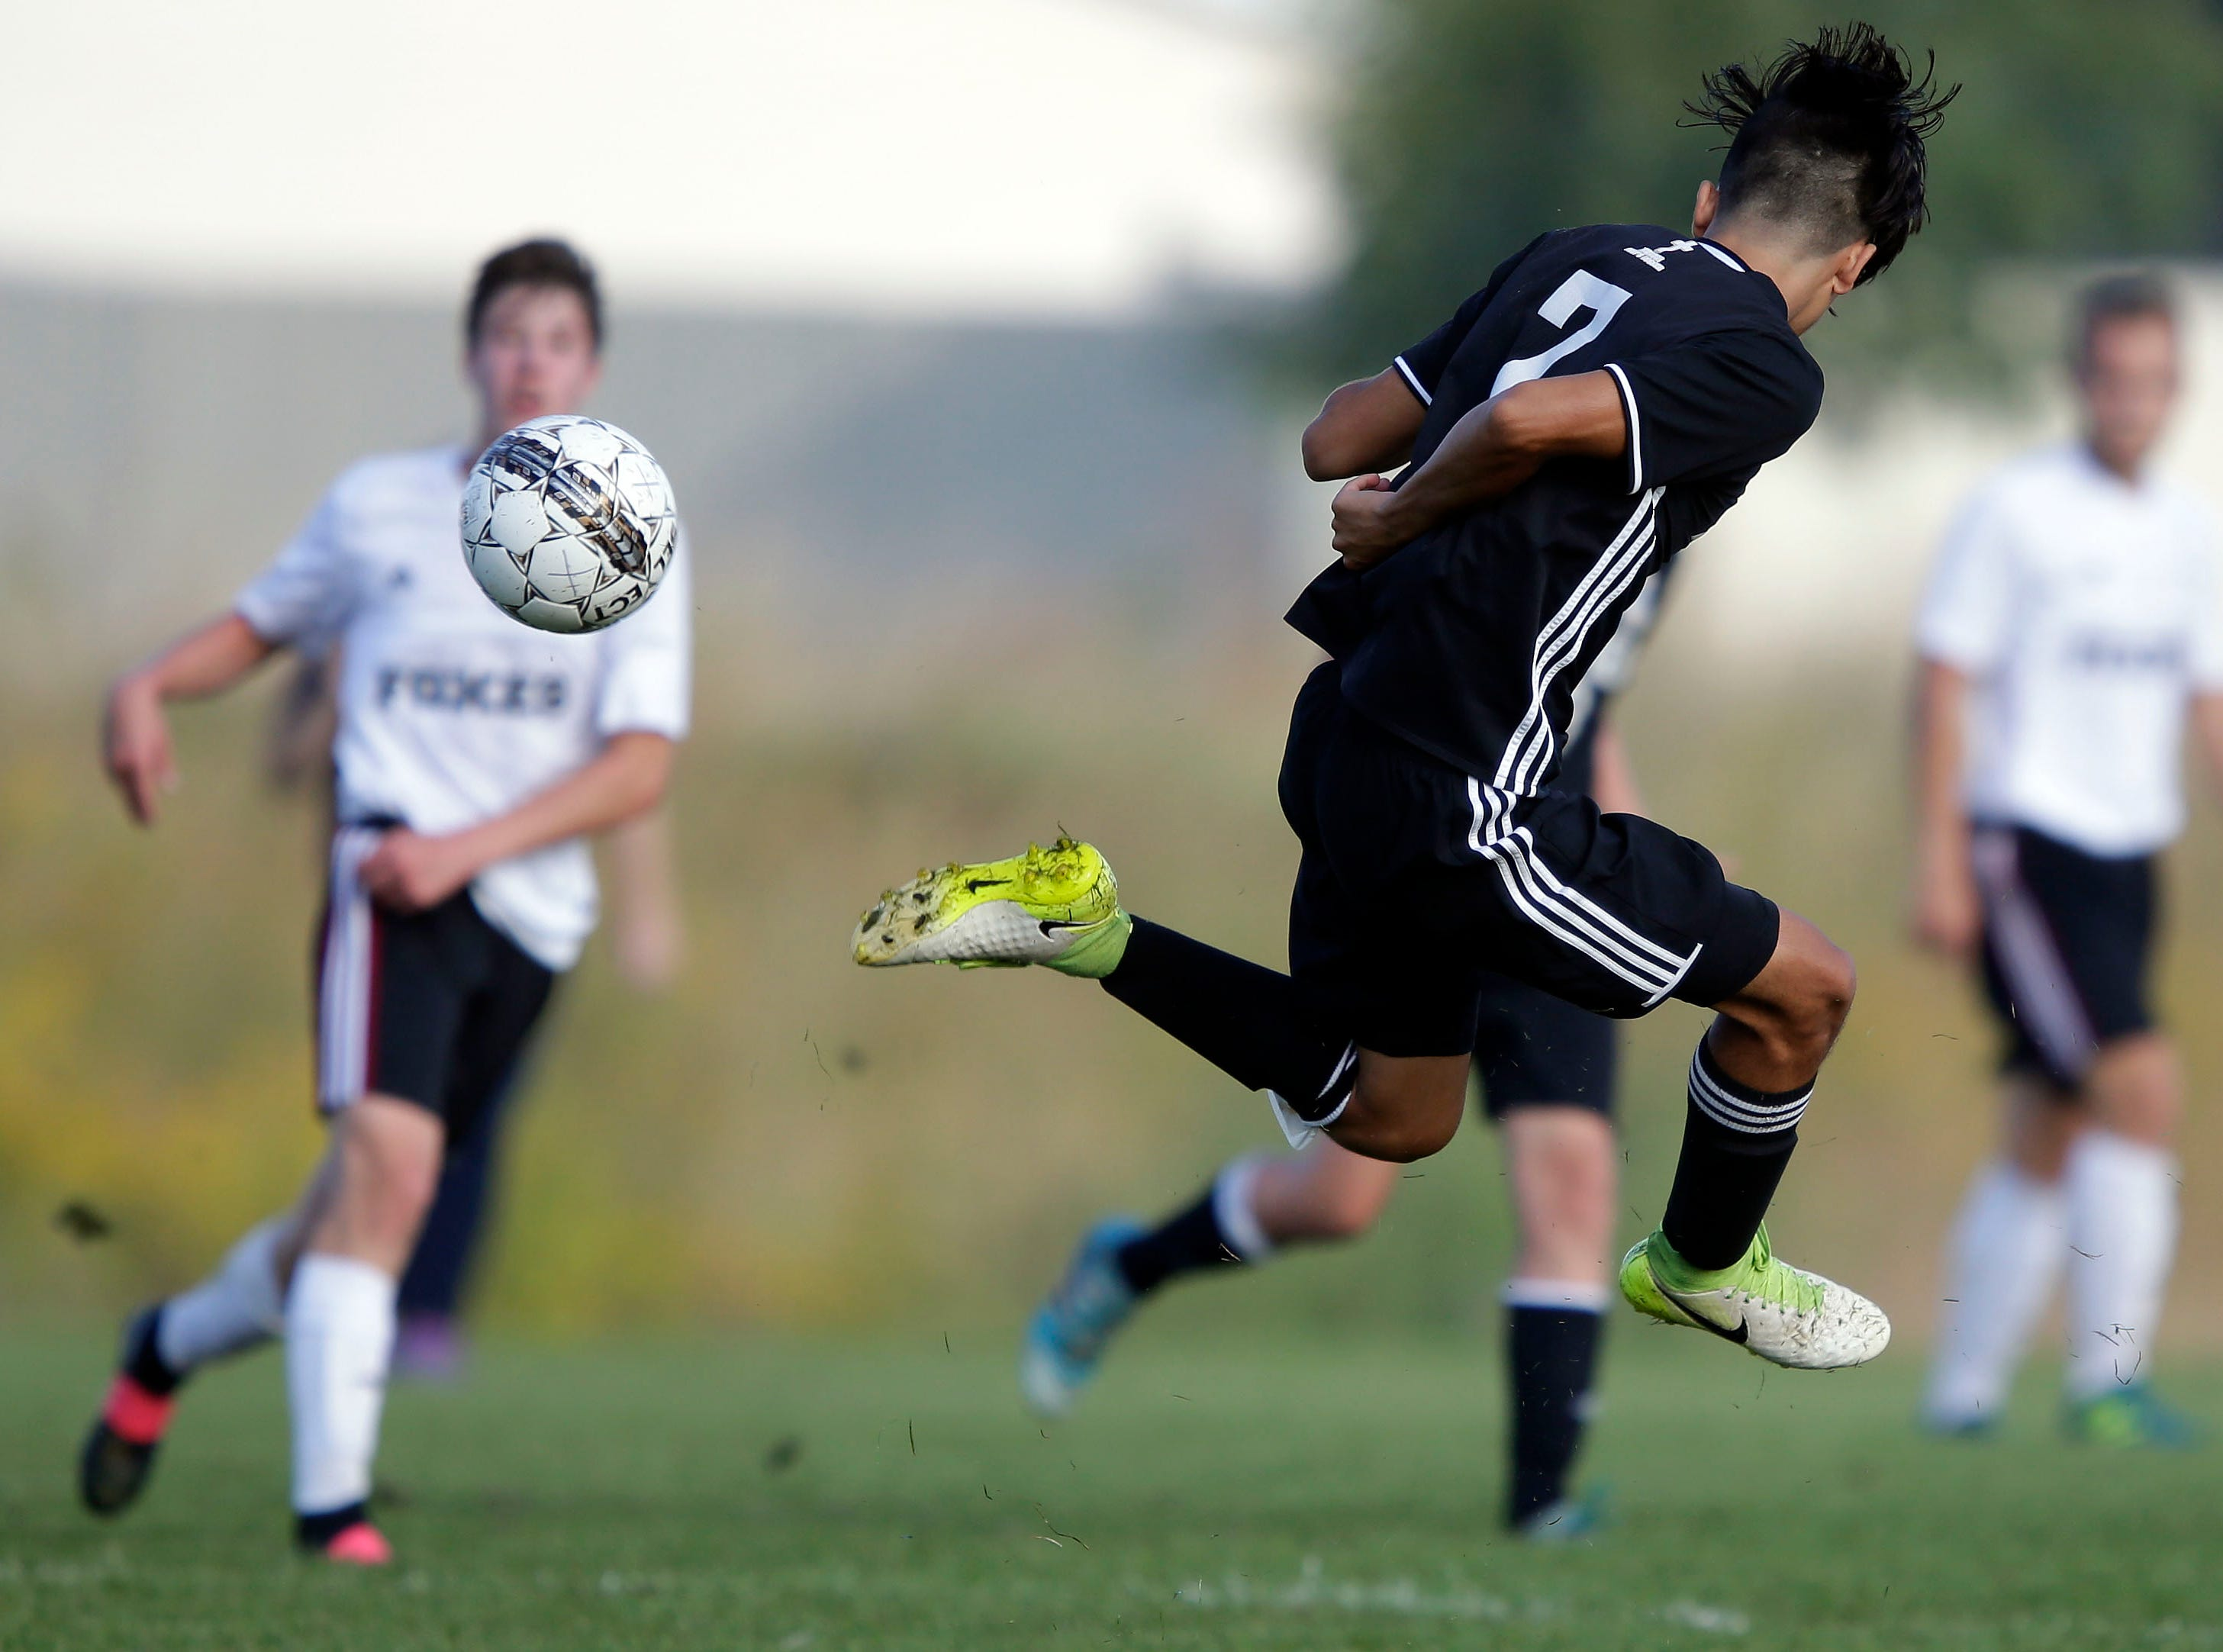 Christian Munguia of Xavier works the ball against Fox Valley Lutheran in the Xavier boys soccer tournament Saturday, September 15, 2018, at the Scheels USA Sports Complex in Appleton, Wis.